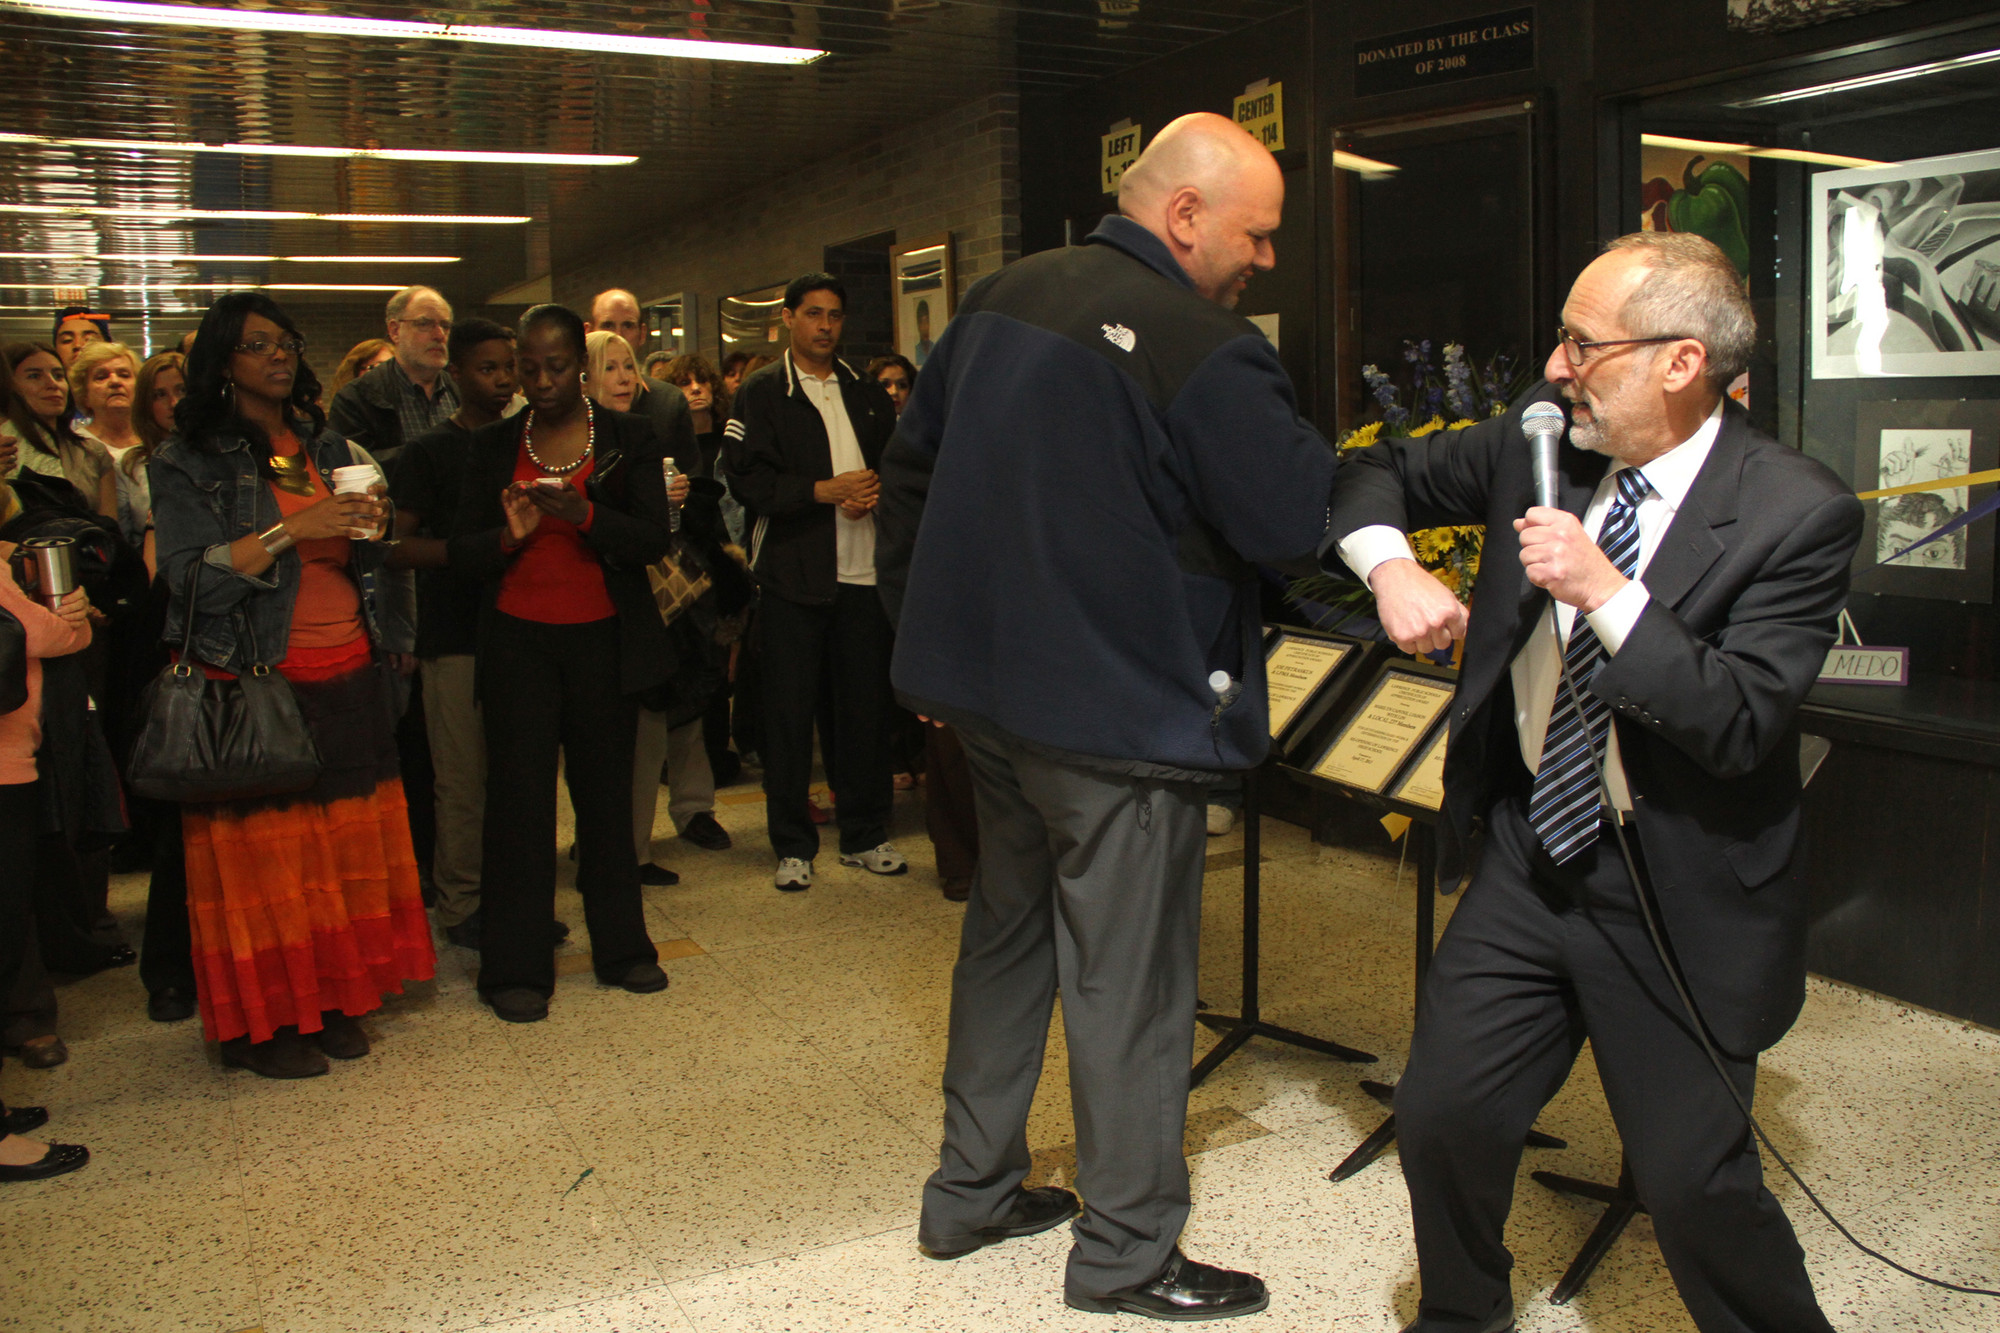 Gary Schall greets Facilities Director Chris Milano with an elbow bump at the ribbon-cutting.